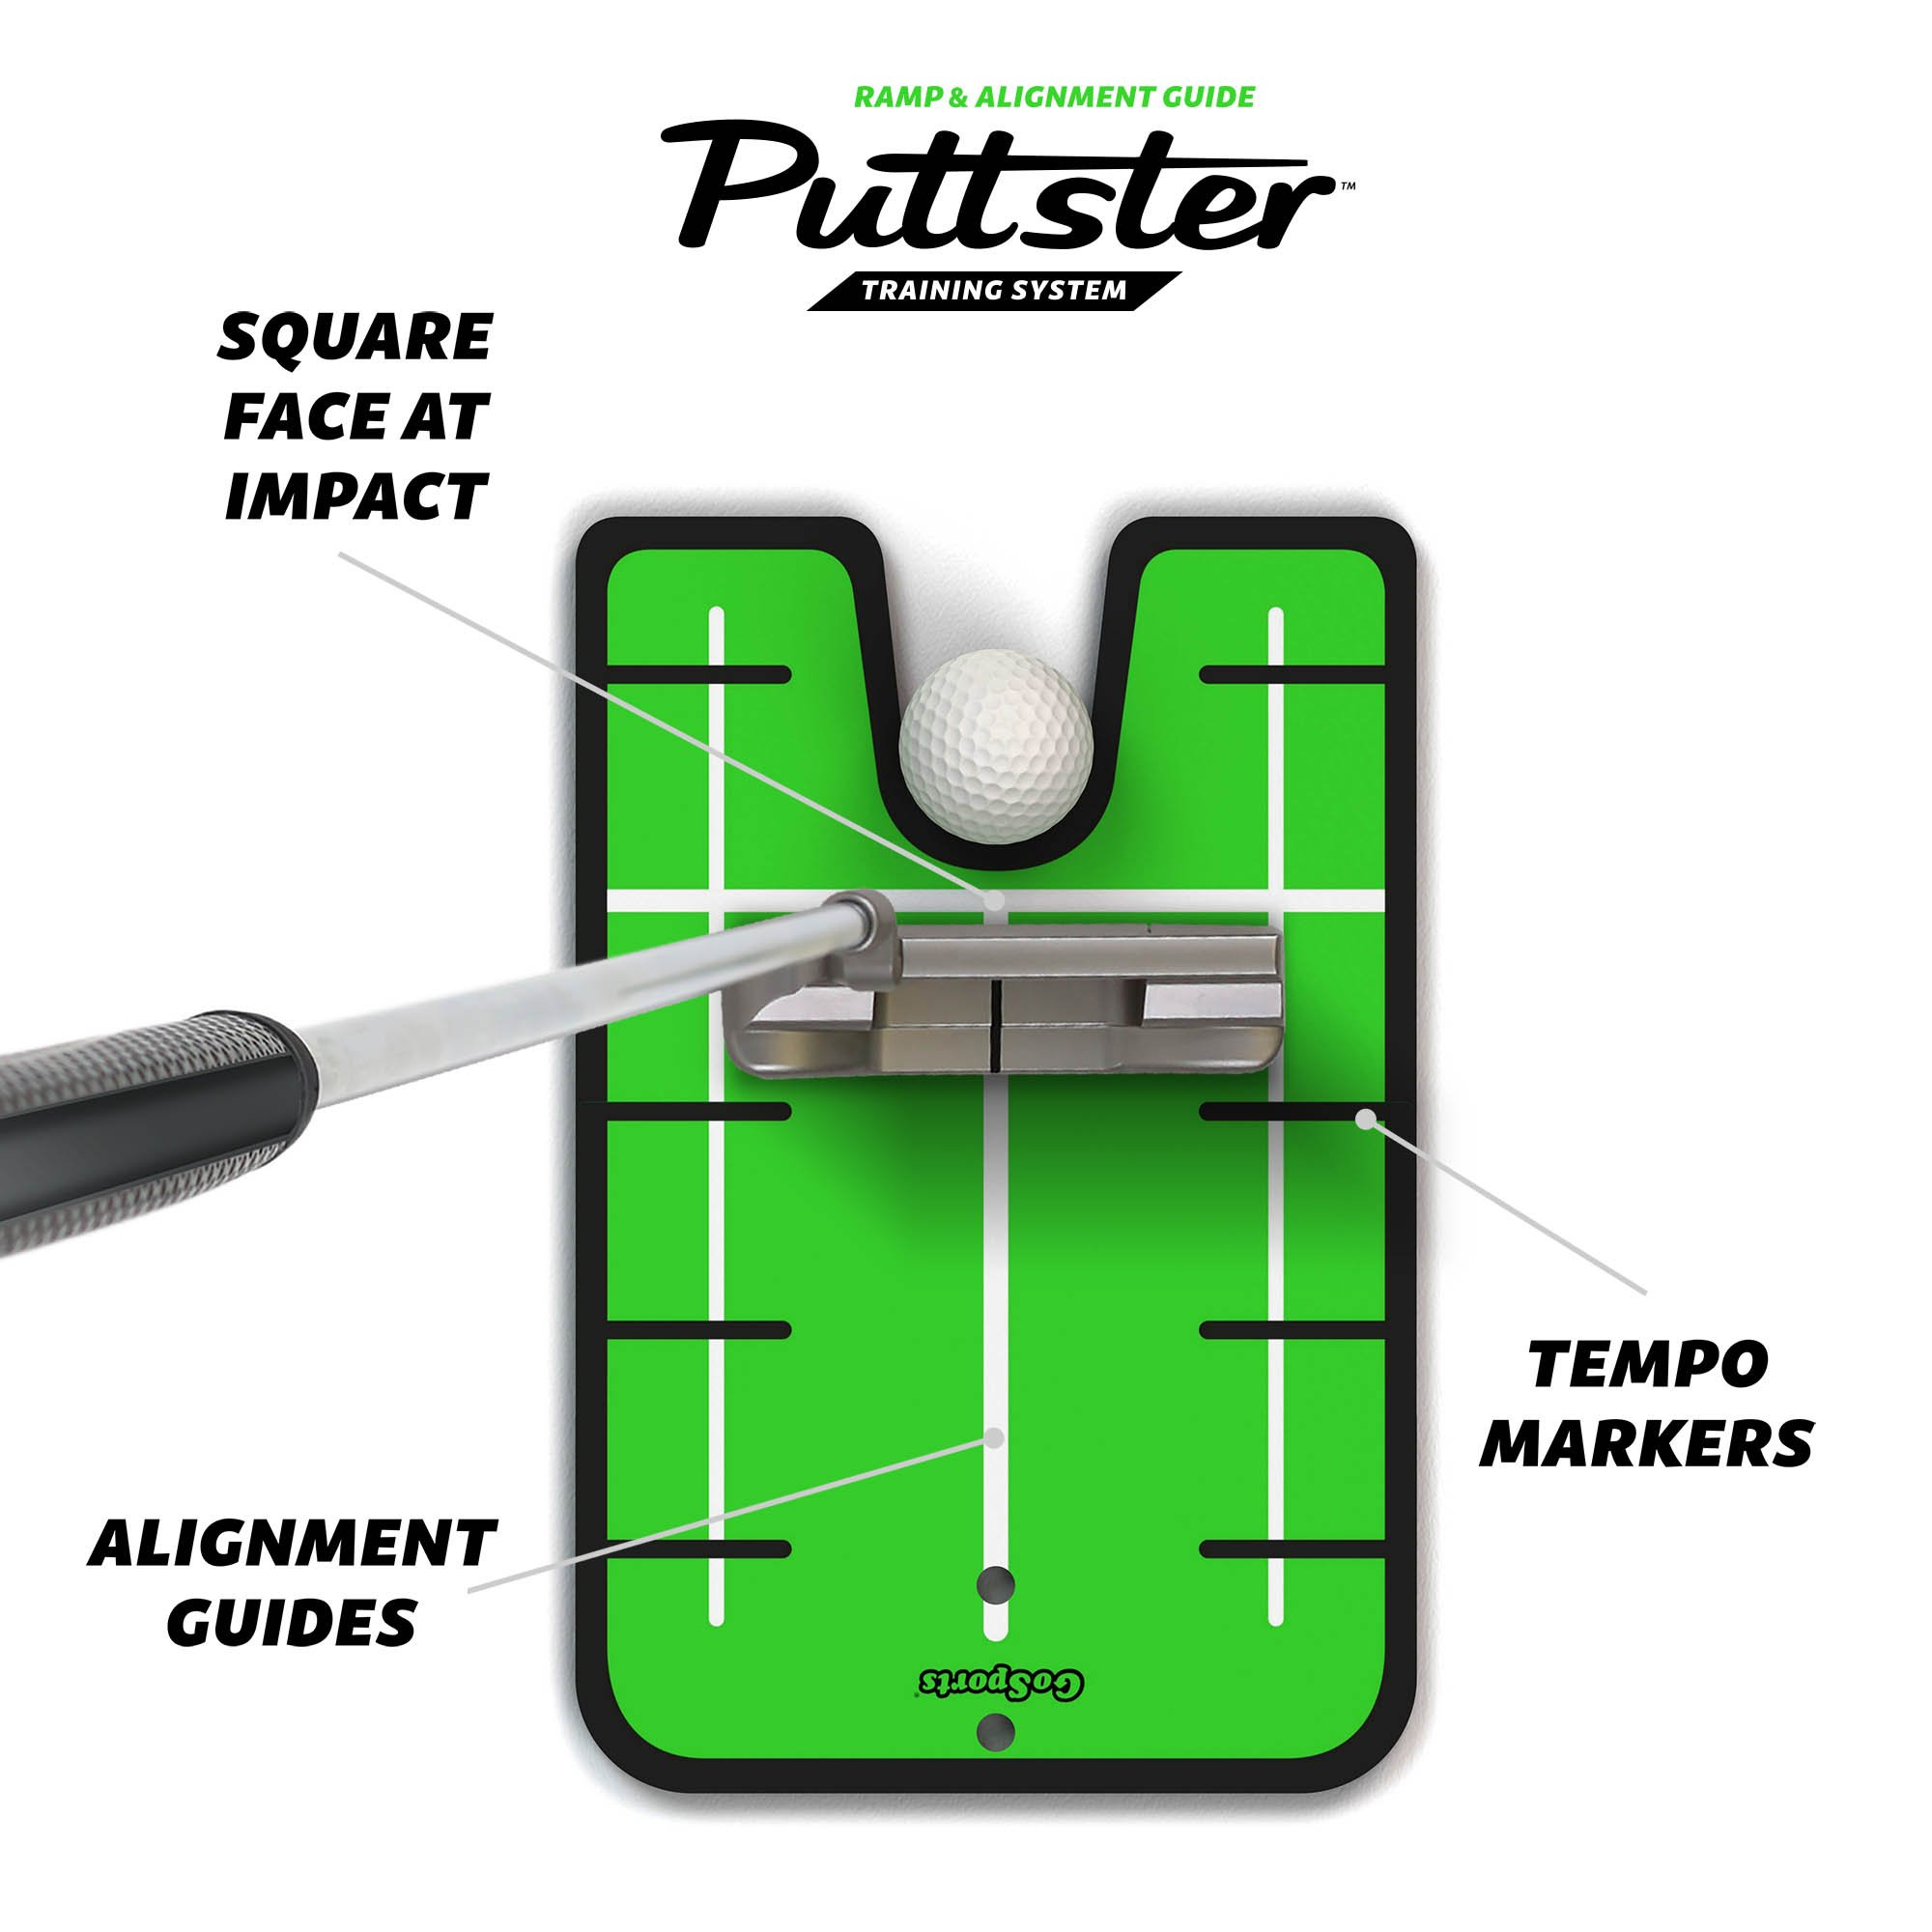 GoSports Puttster Golf Putting Training Aid - Alignment Guide with Cup Ramp Return System for Indoor or Outdoor Practice by GoSports (Image #2)